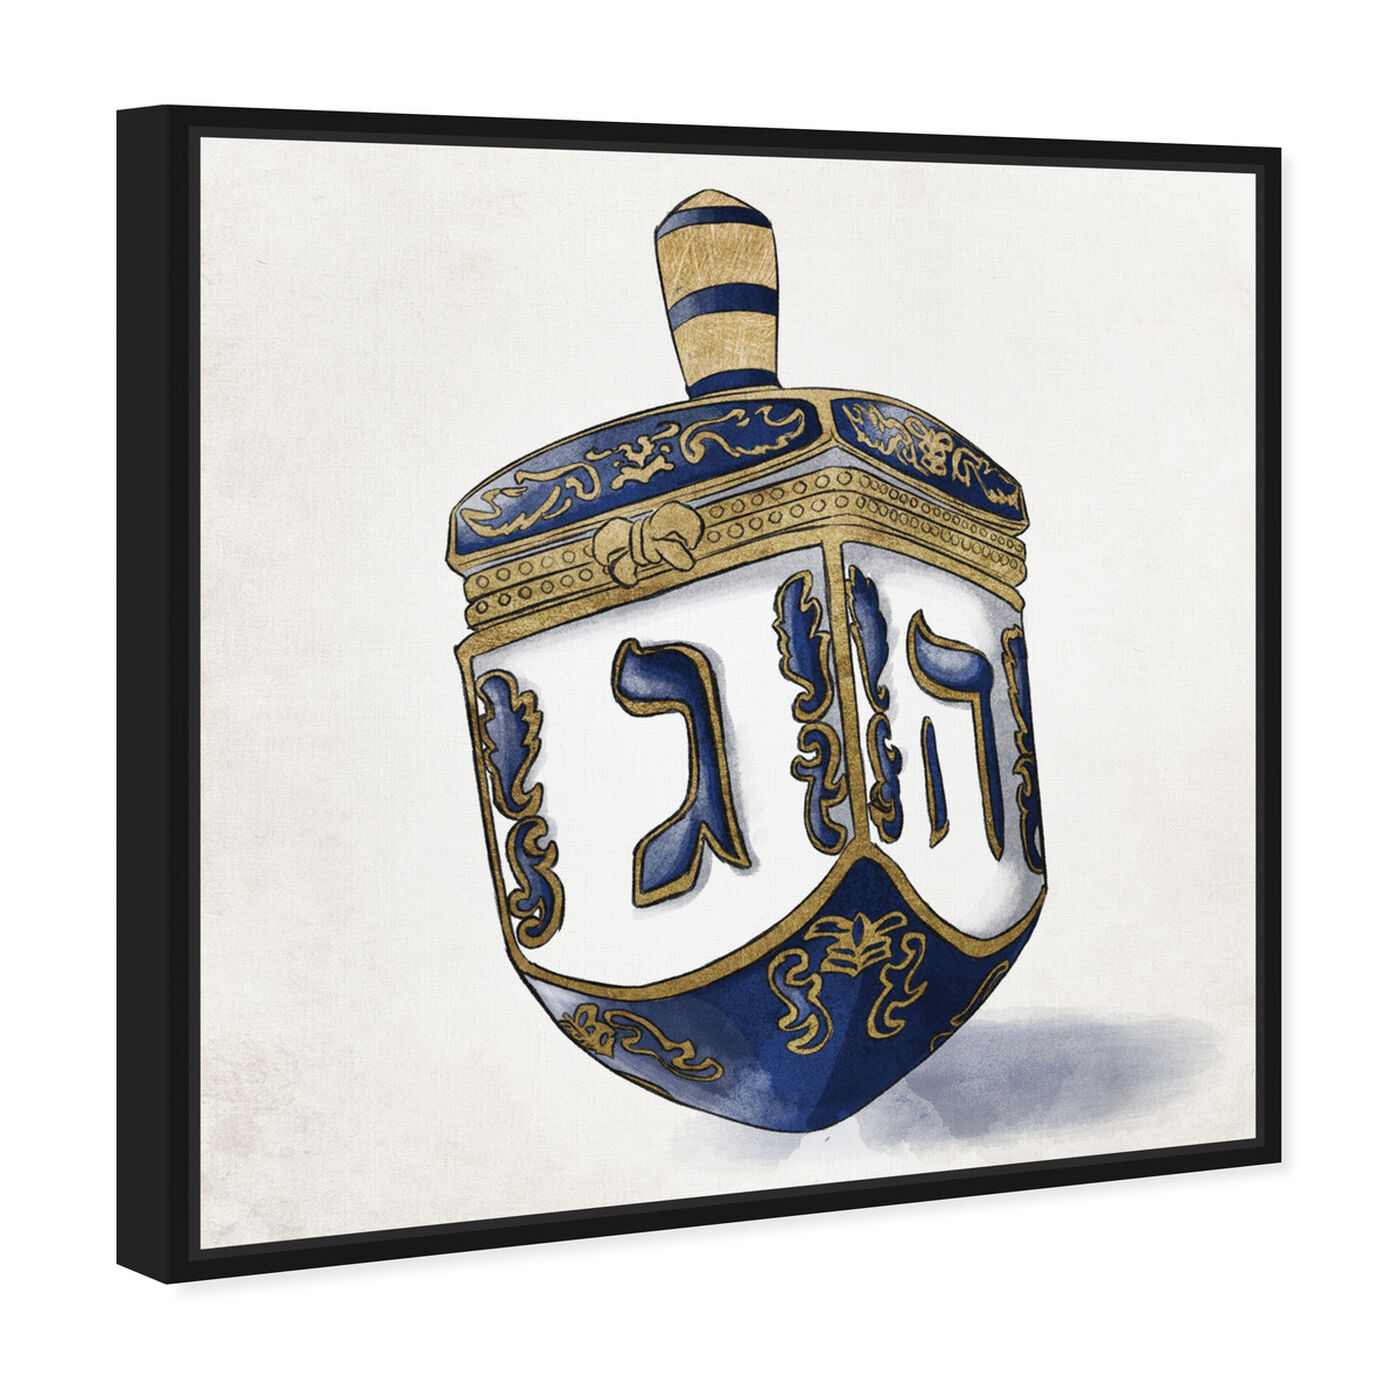 Angled view of Decorated Dreidel Artwork featuring entertainment and hobbies and board games art.